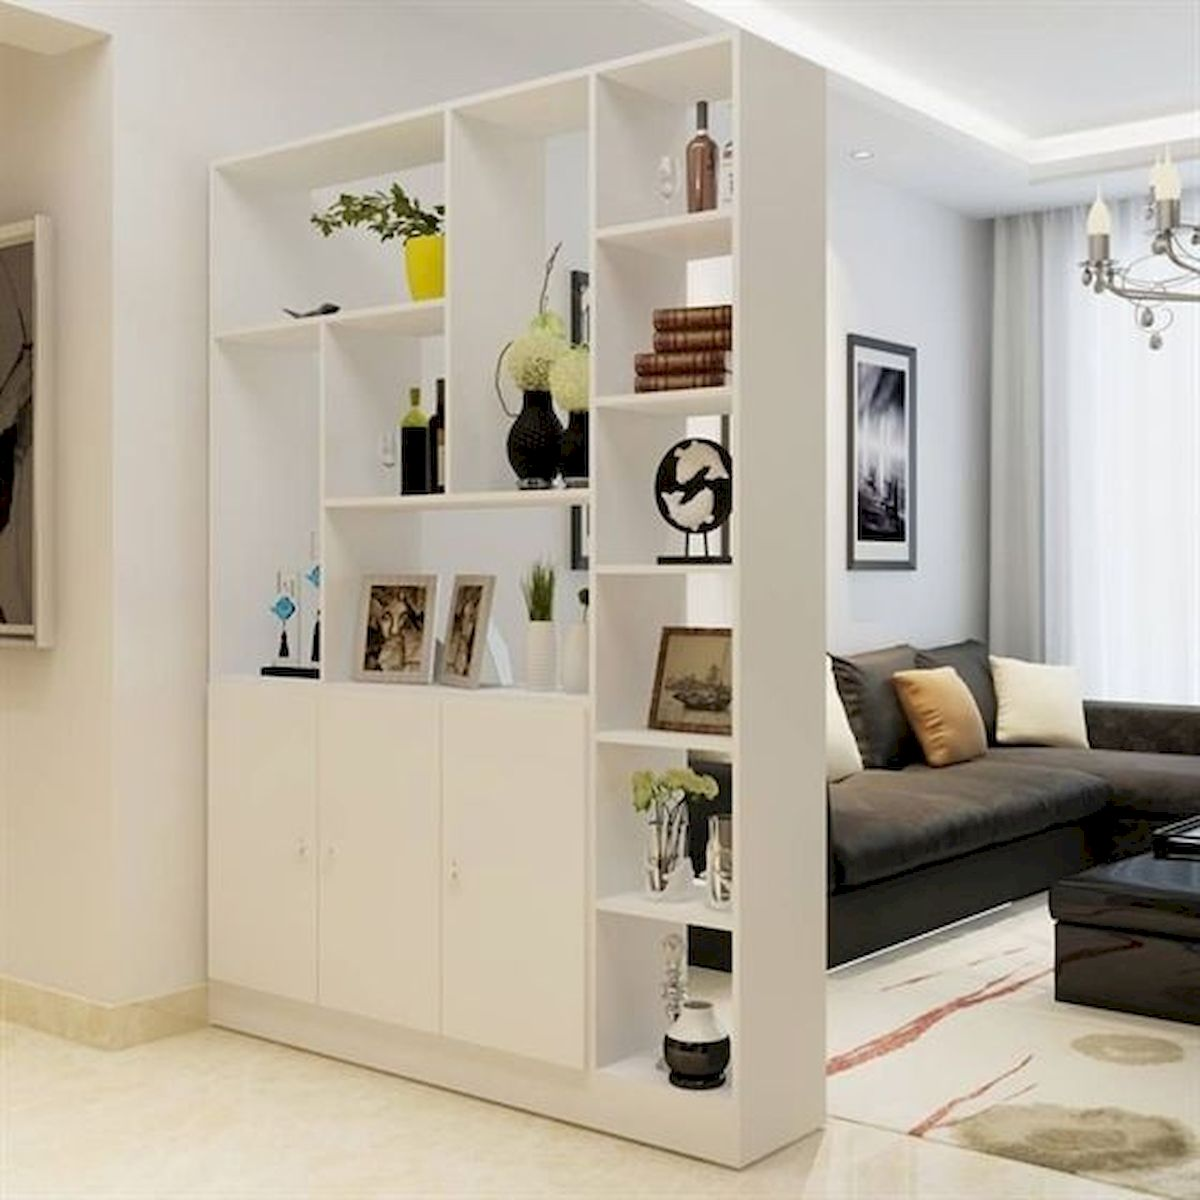 66 Studio Apartment Storage Decor Ideas (6)